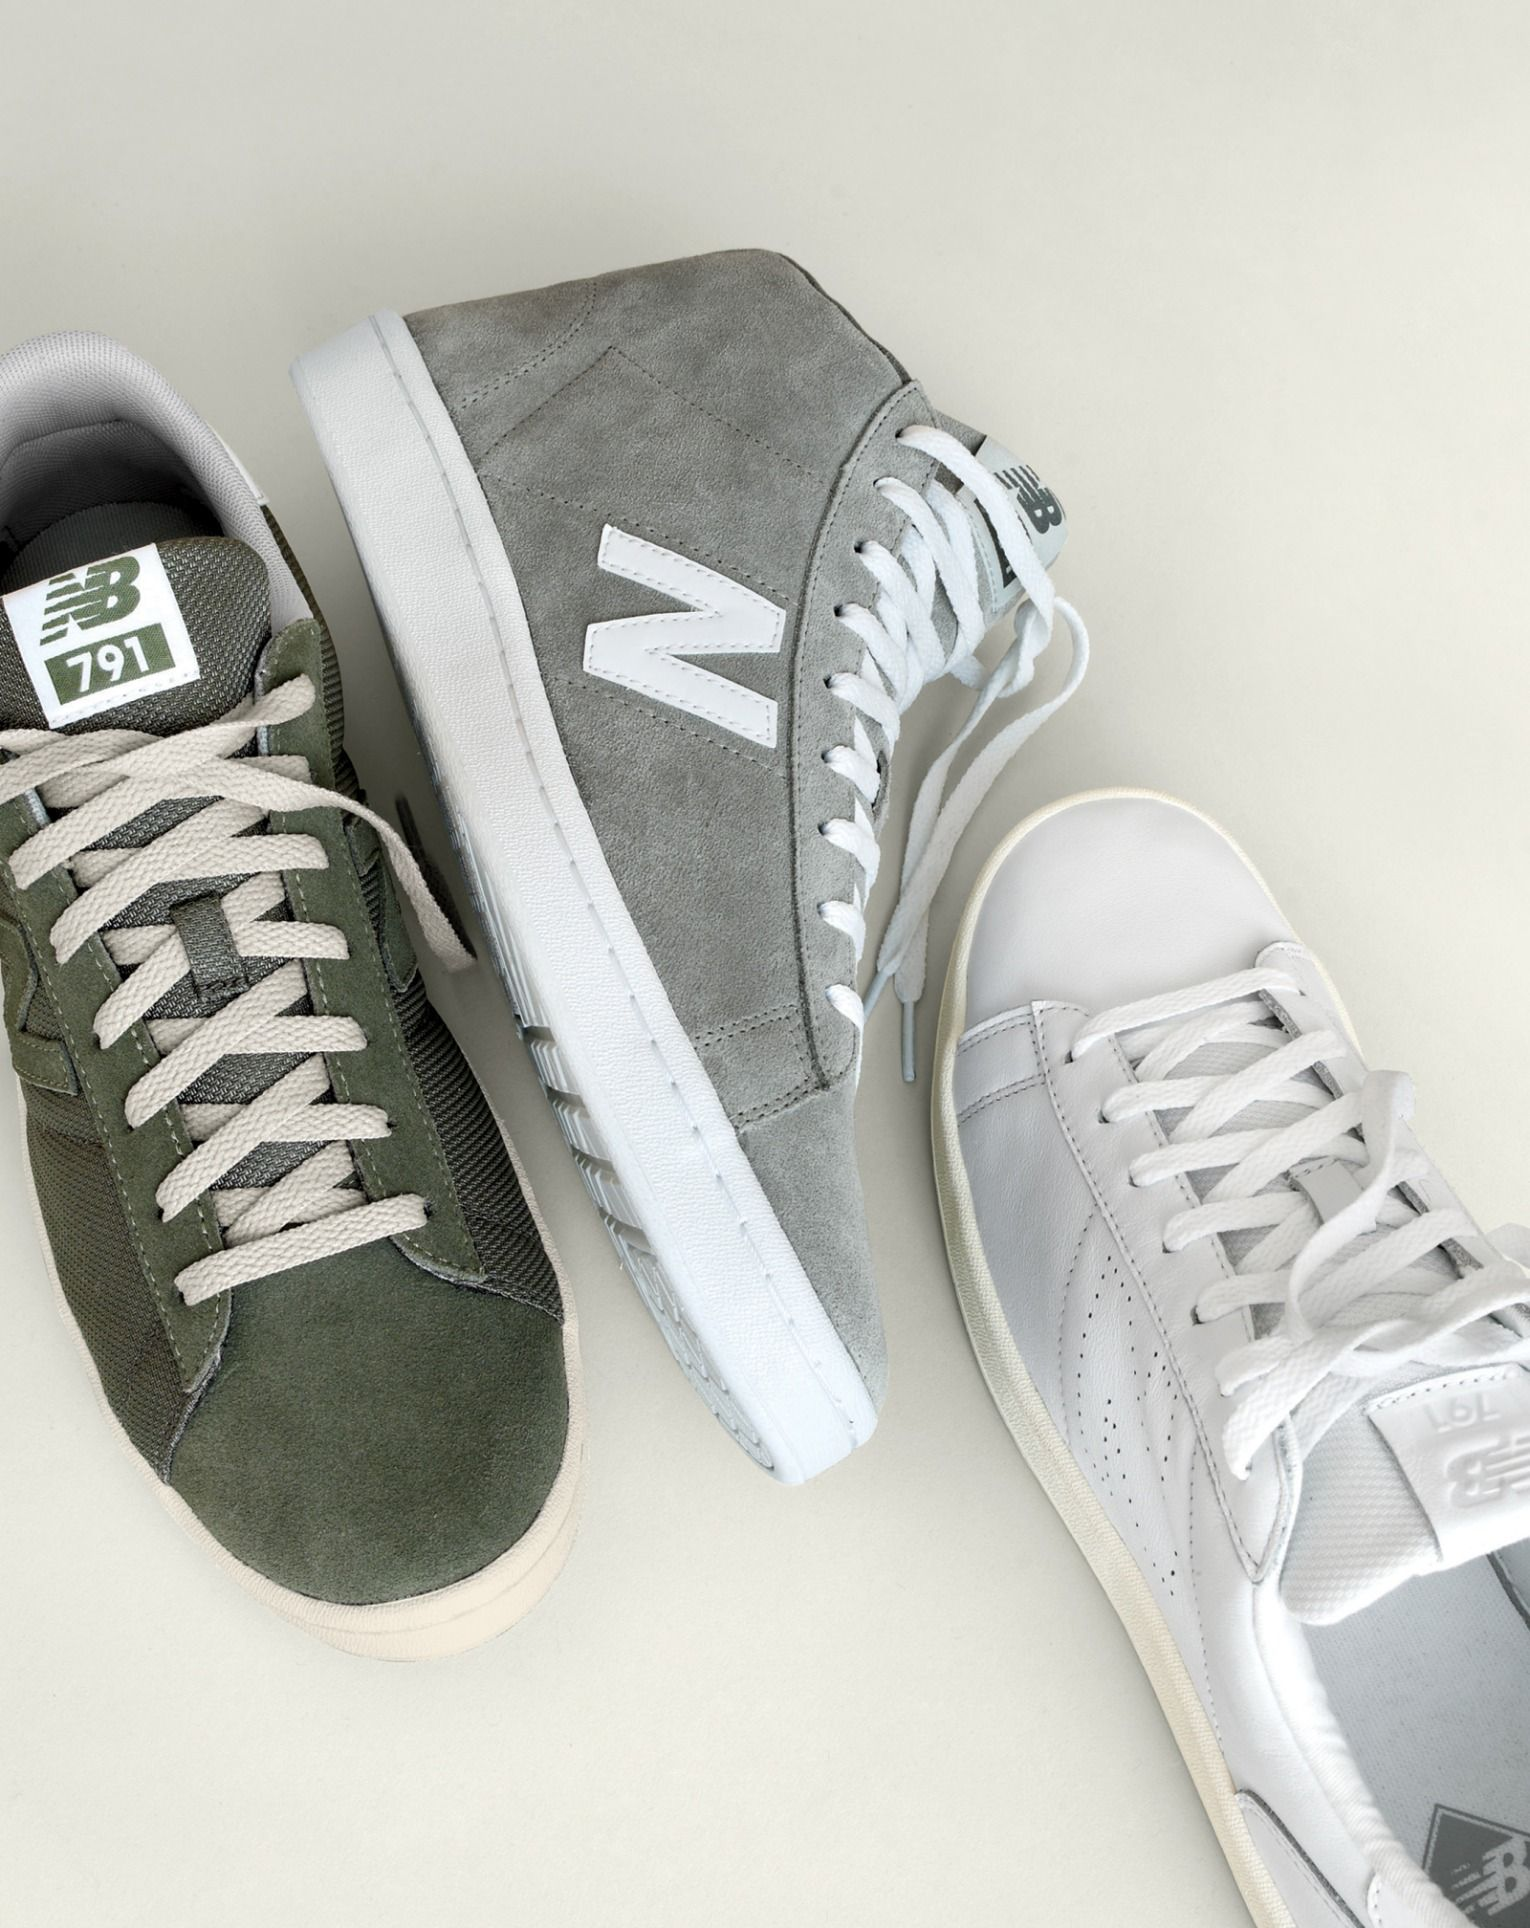 Take your kicks to work day. Dressing up doesn't always mean dress shoes. J.Crew's latest exclusive New Balance® sneakers can be a streamlined substitute for your wing tips. To pre-order, call 800 261 7422 or email verypersonalstylist@jcrew.com.